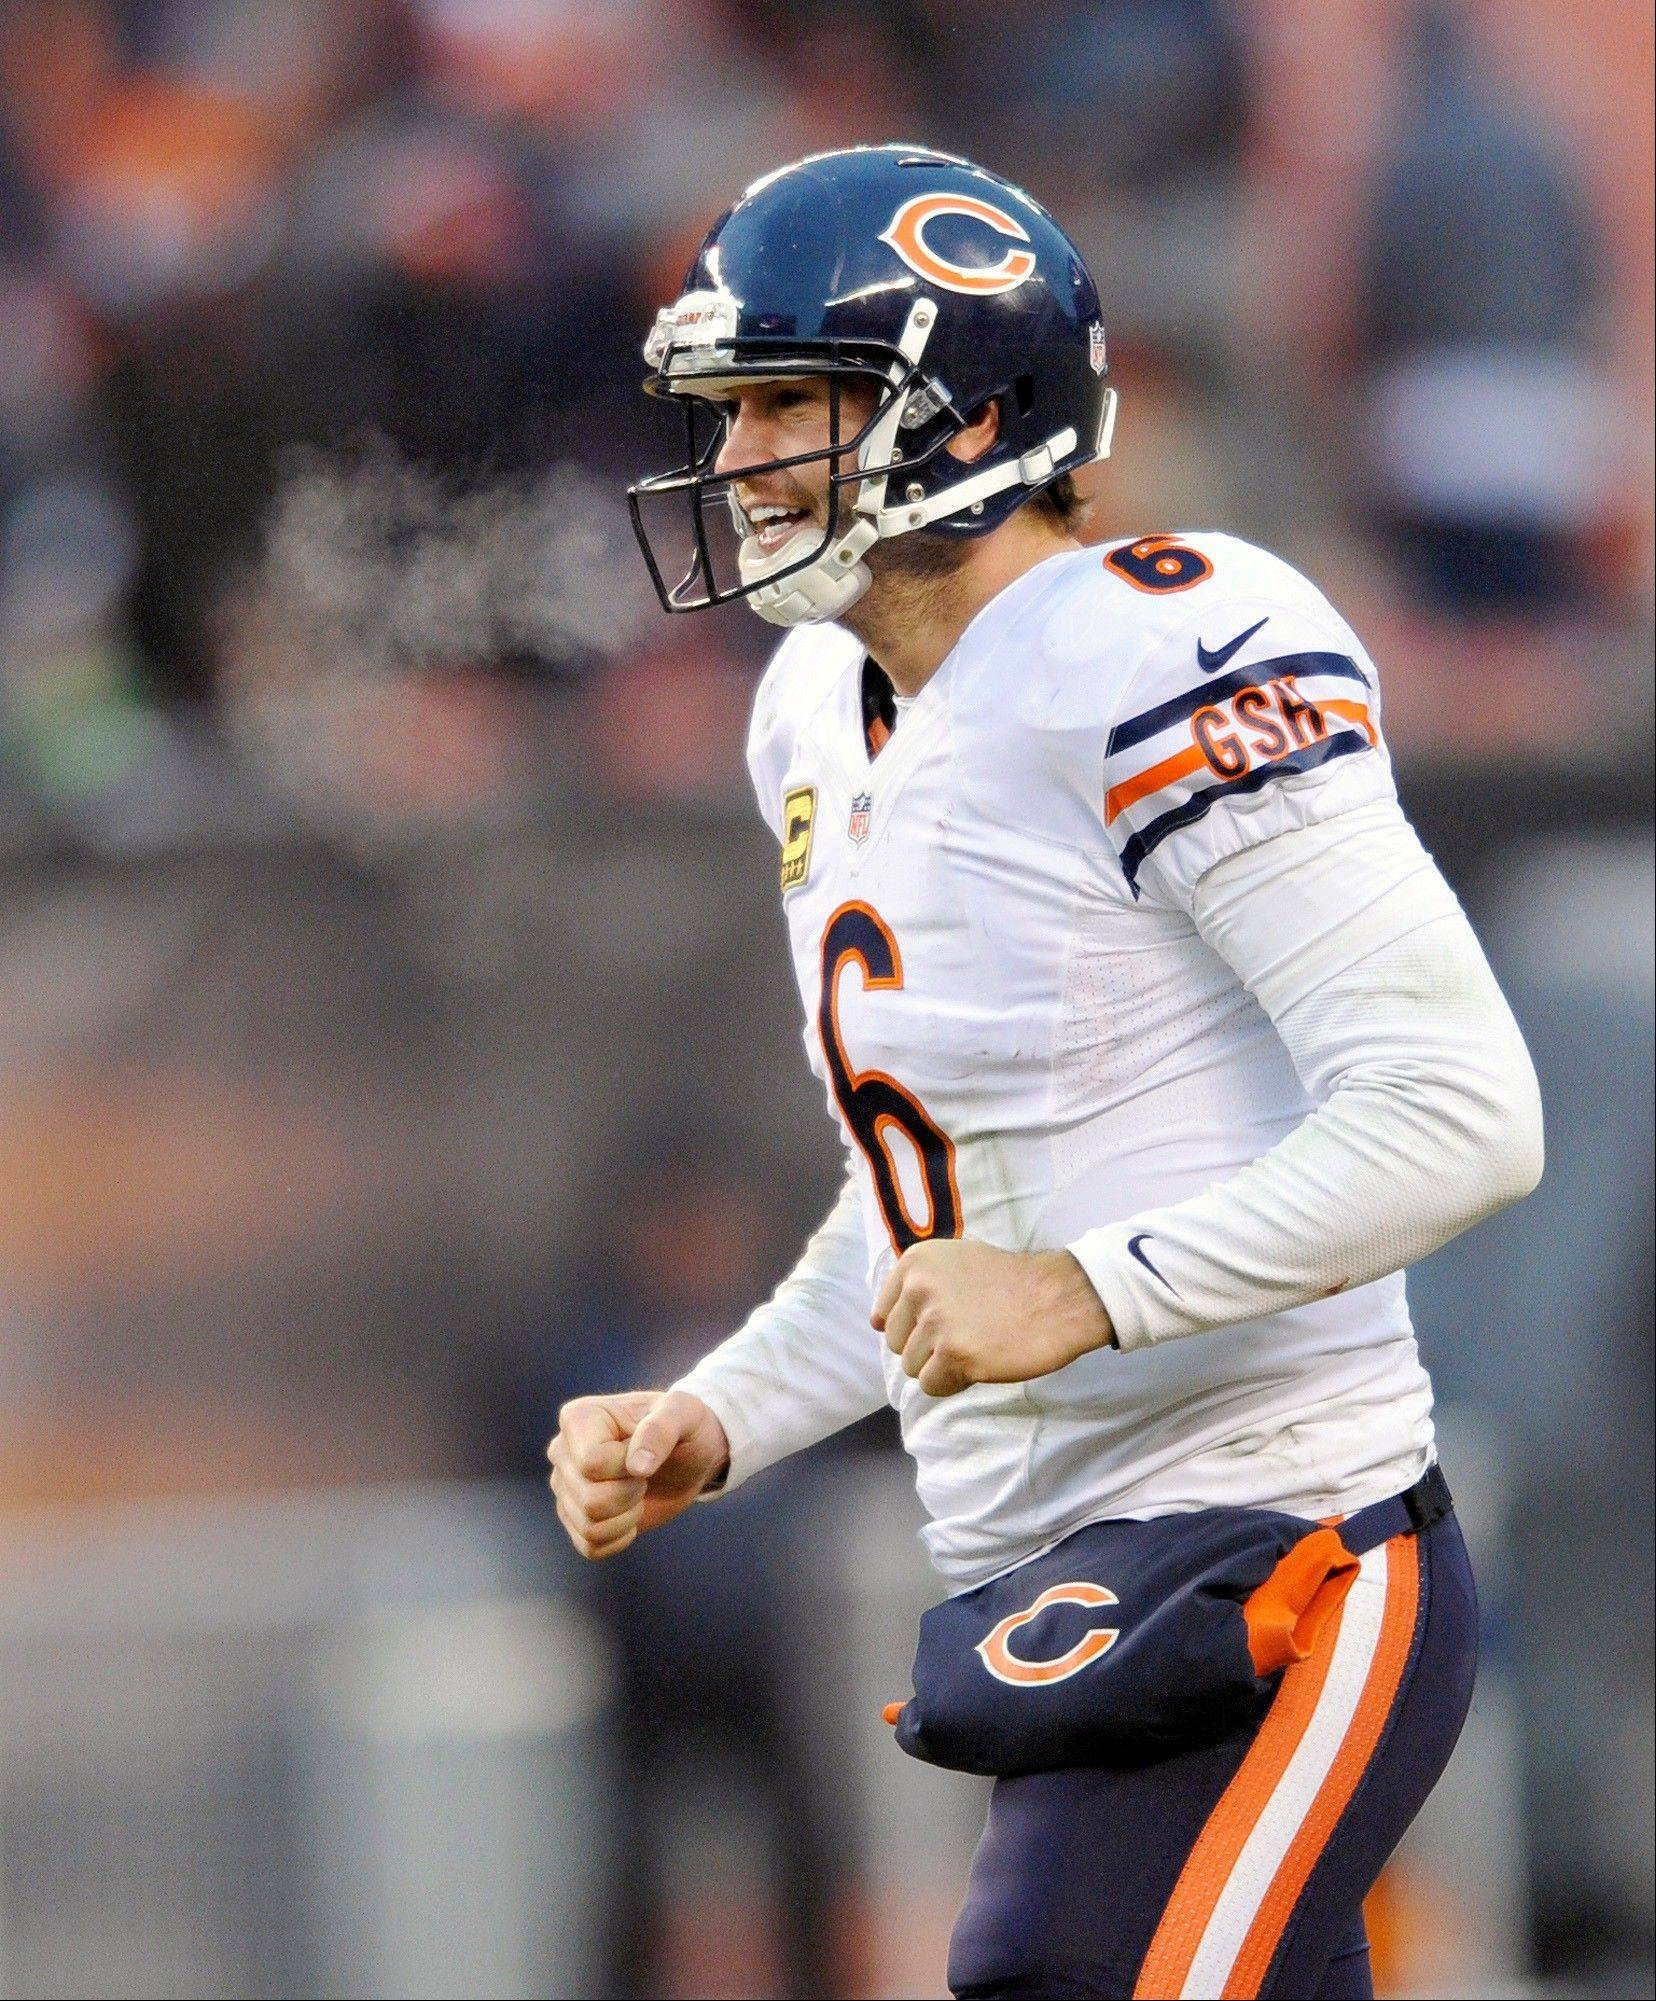 Noise reaches all-time loud for Cutler, Bears